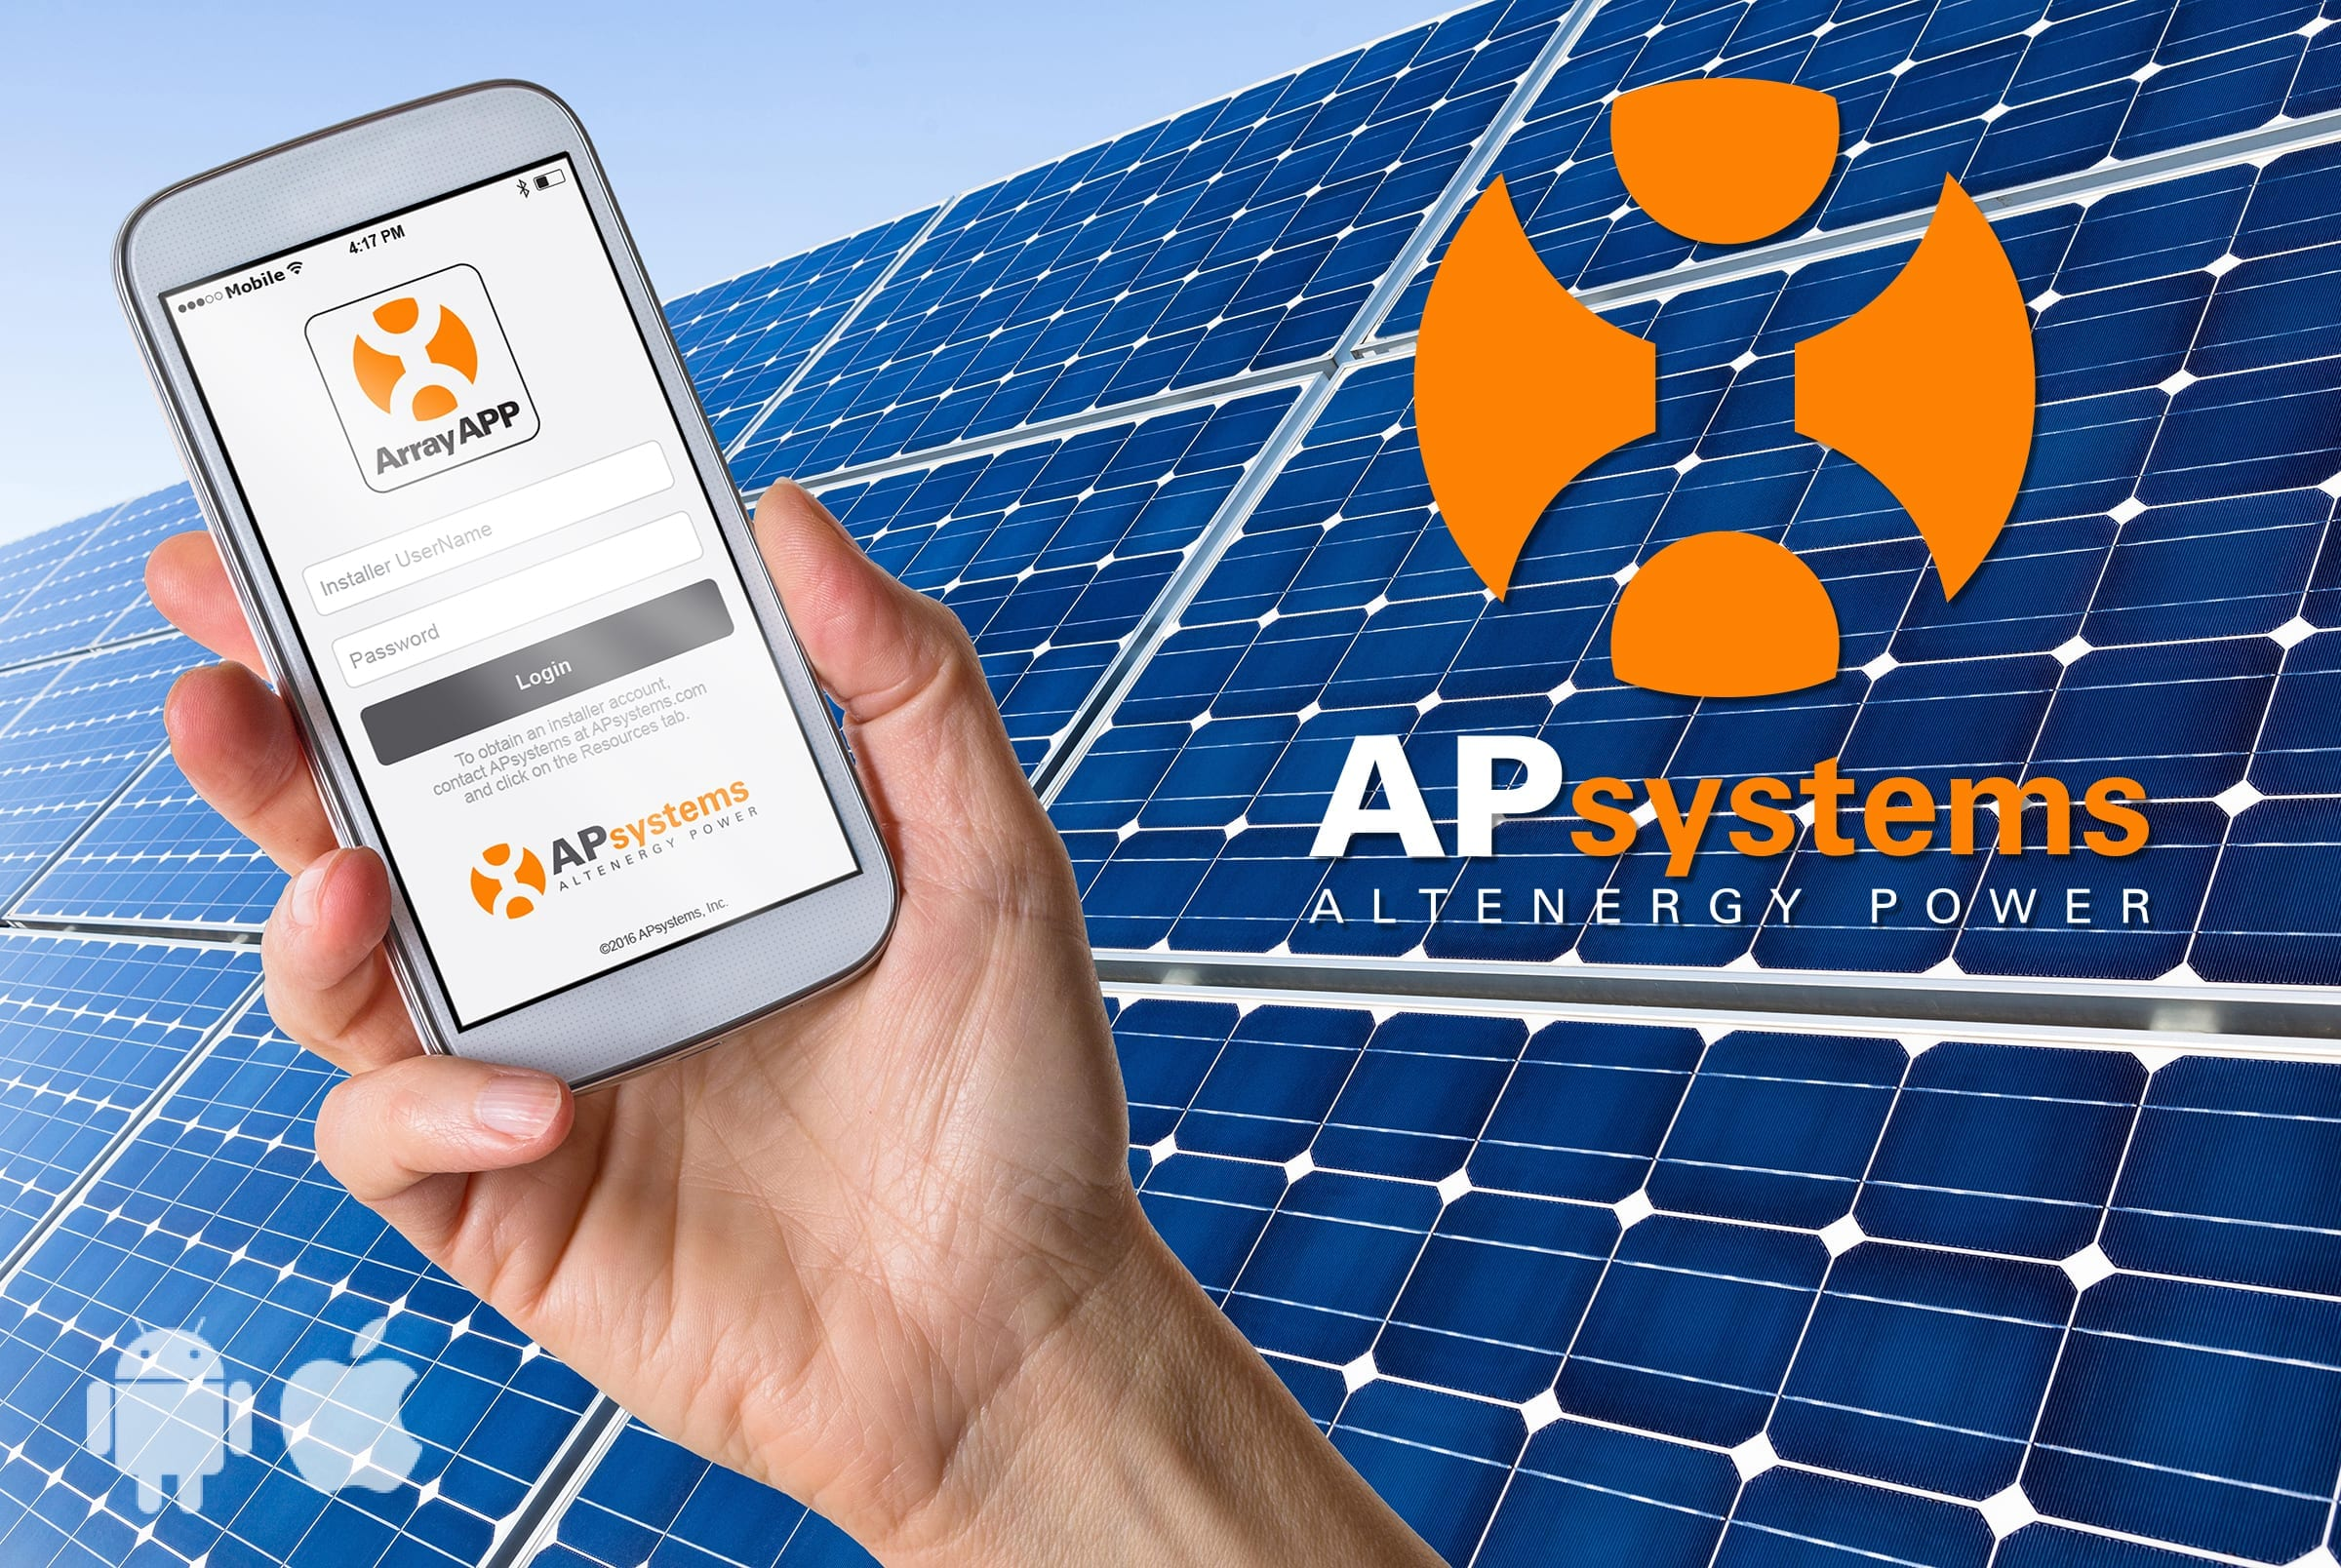 Apsystems Launches All In One Arrayapp Mobile Solar